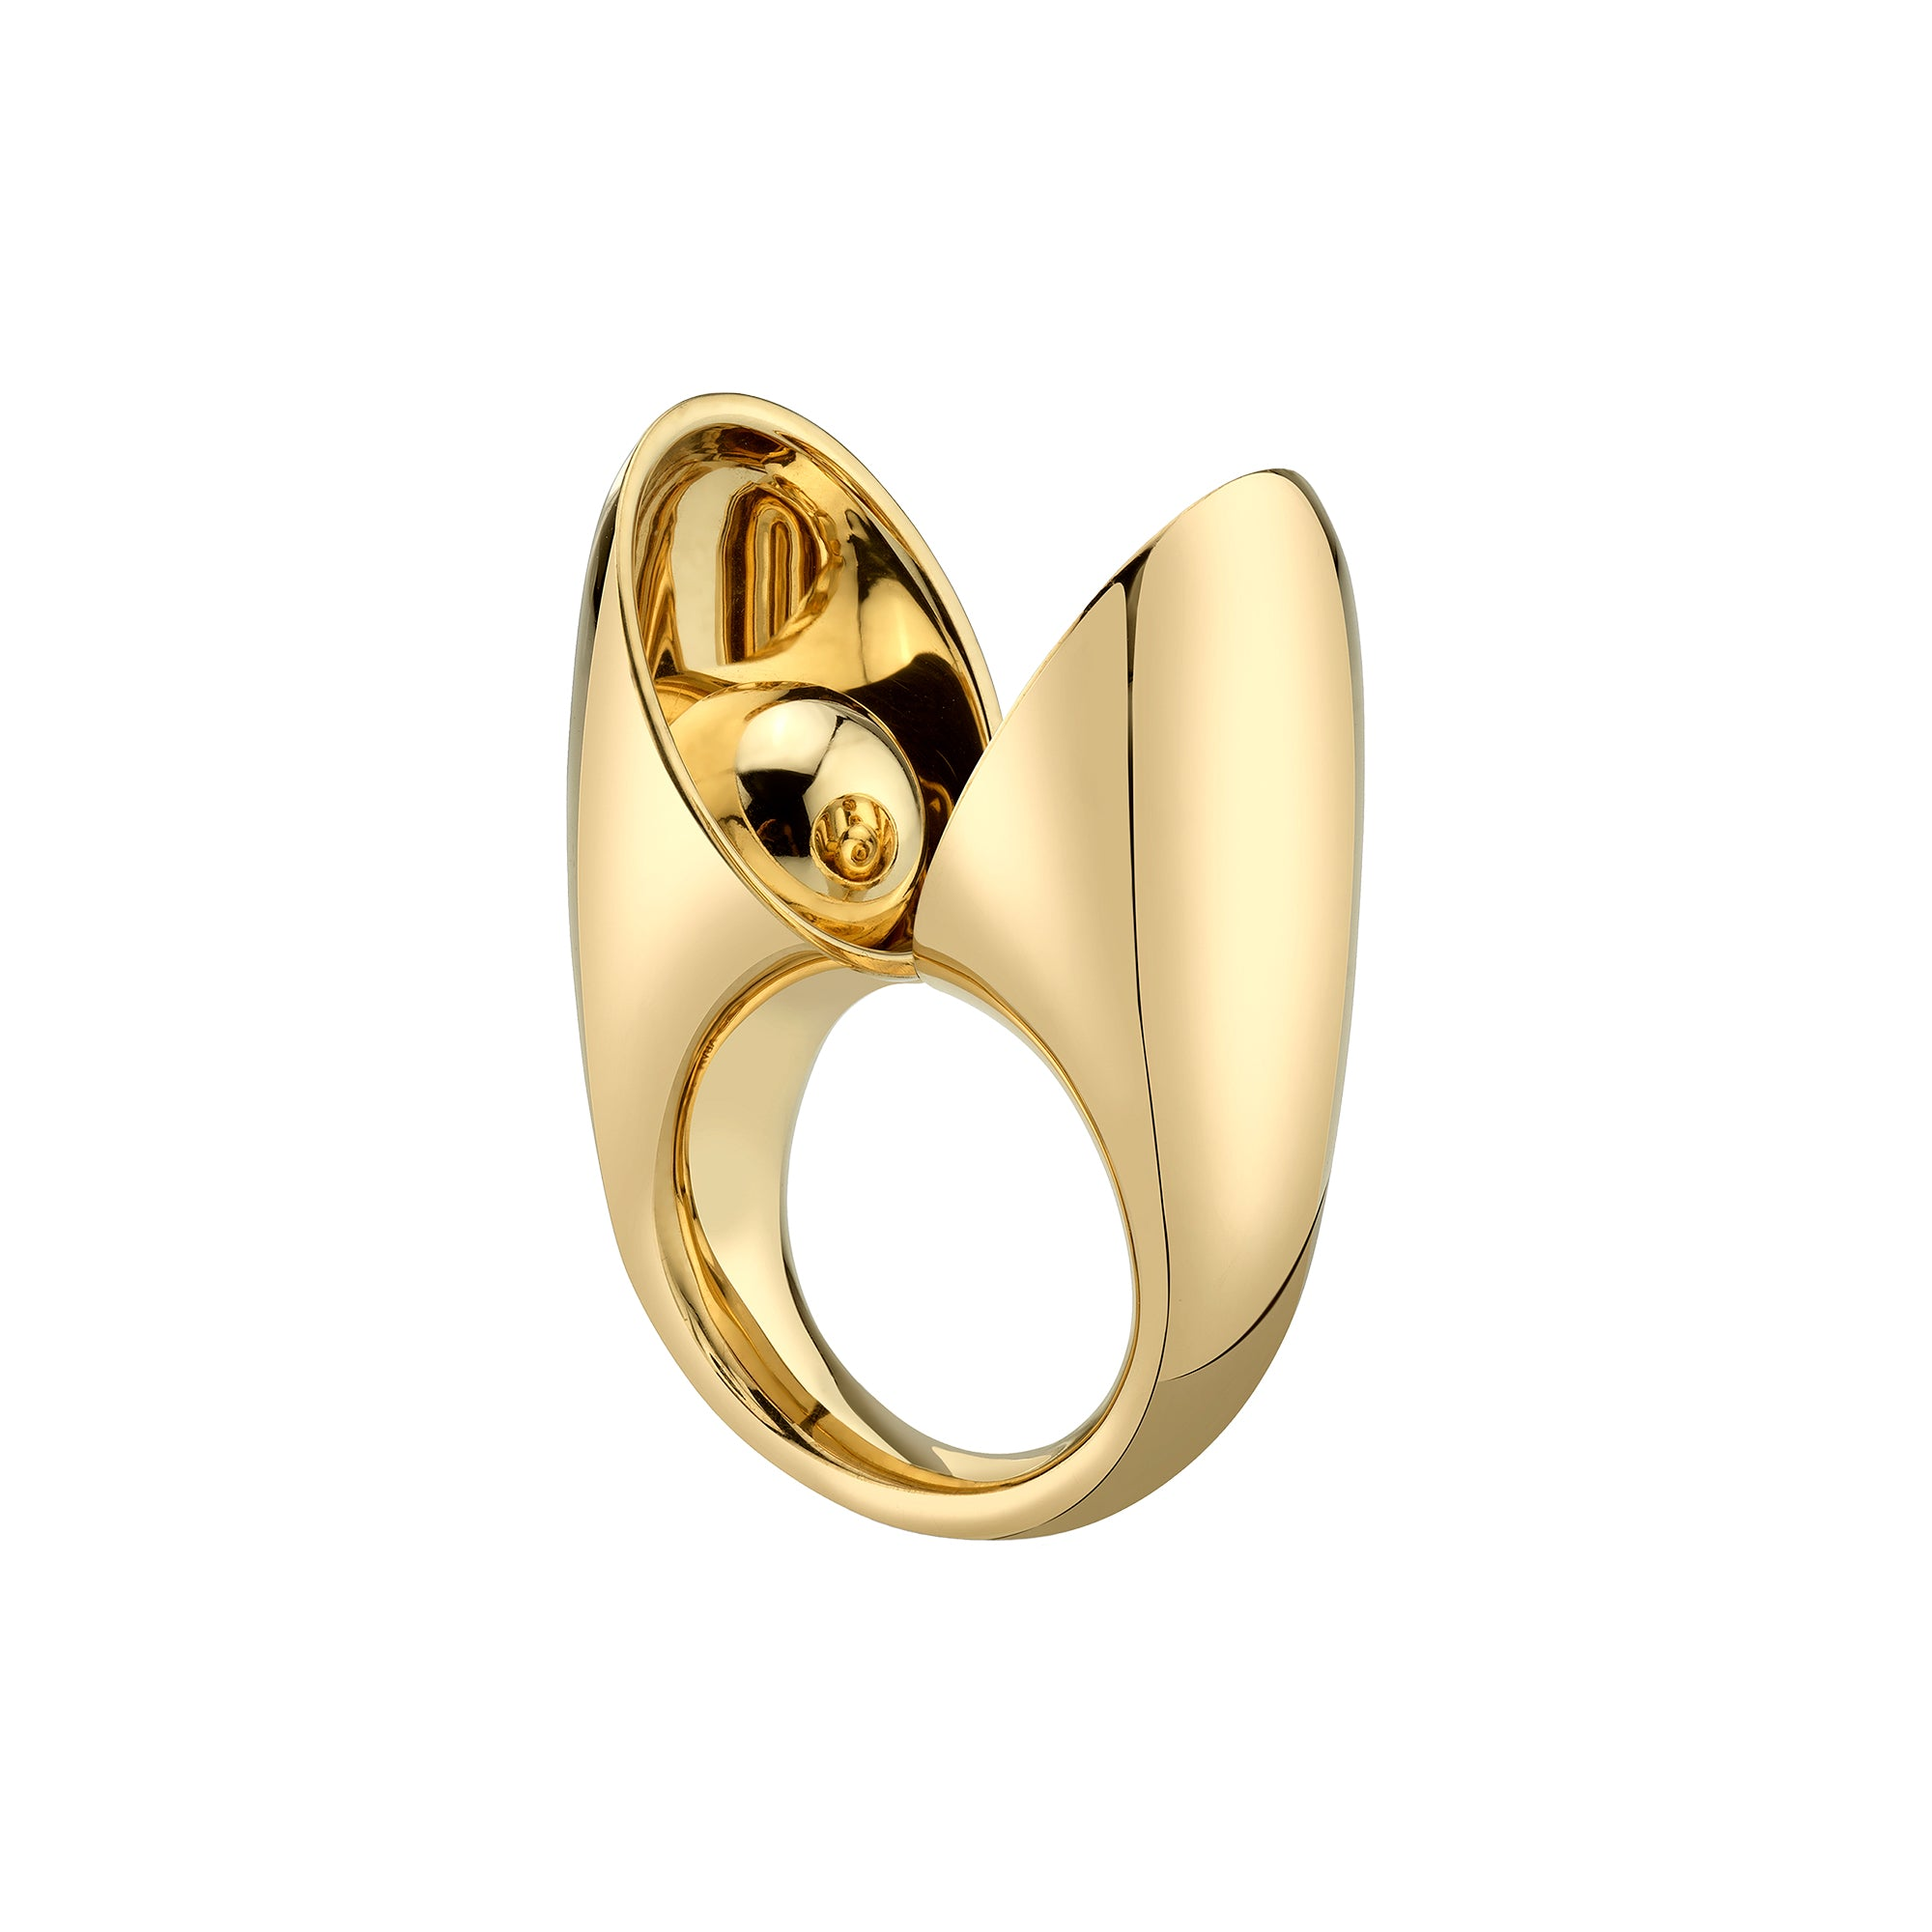 VRAM Echo Eon Ring - Rings - Broken English Jewelry